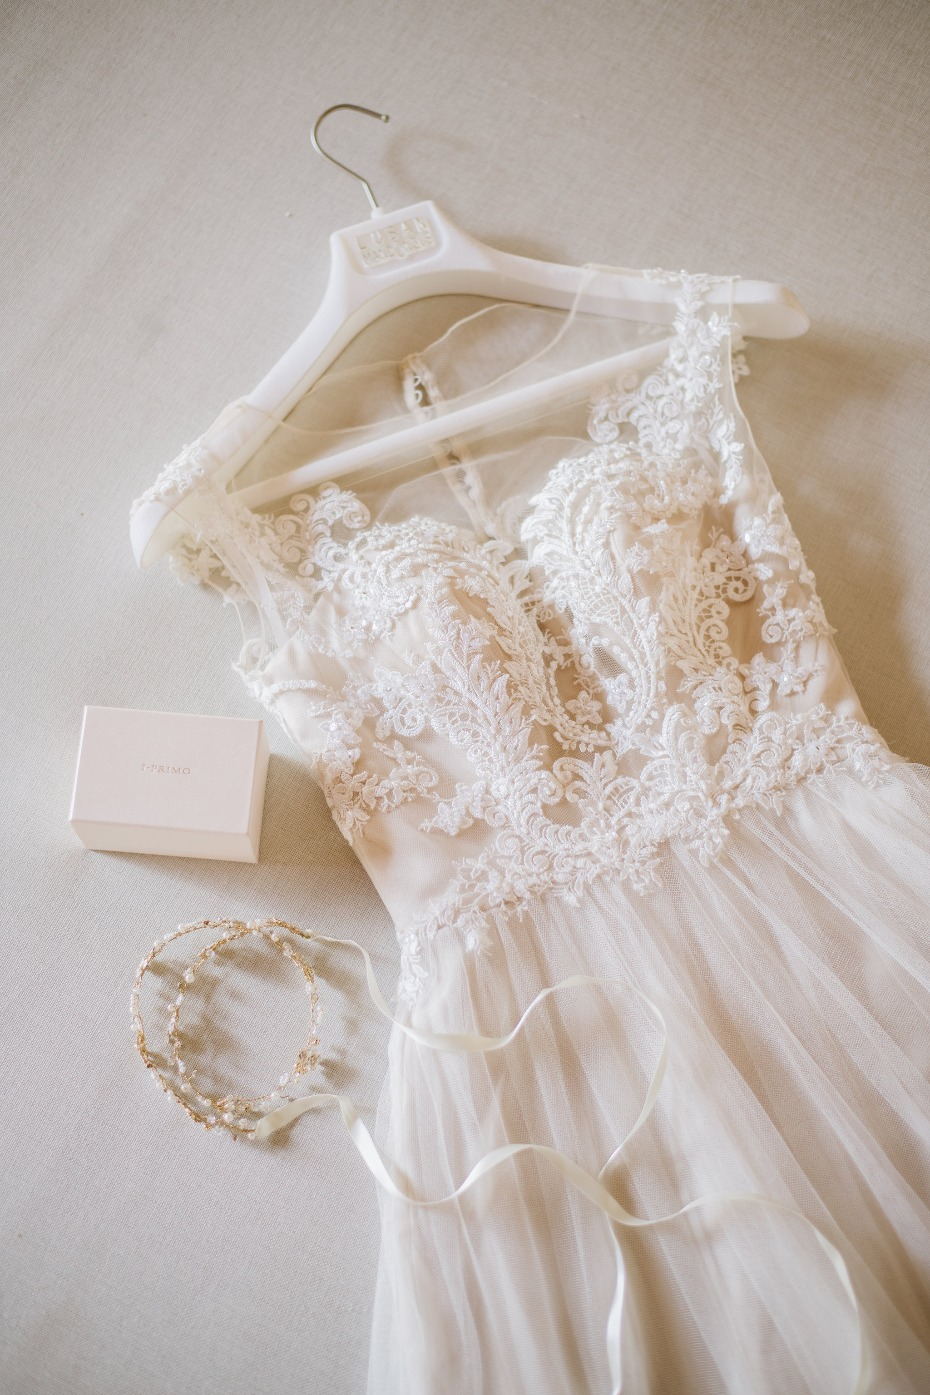 Embellished wedding gown by Lusan Mandongus